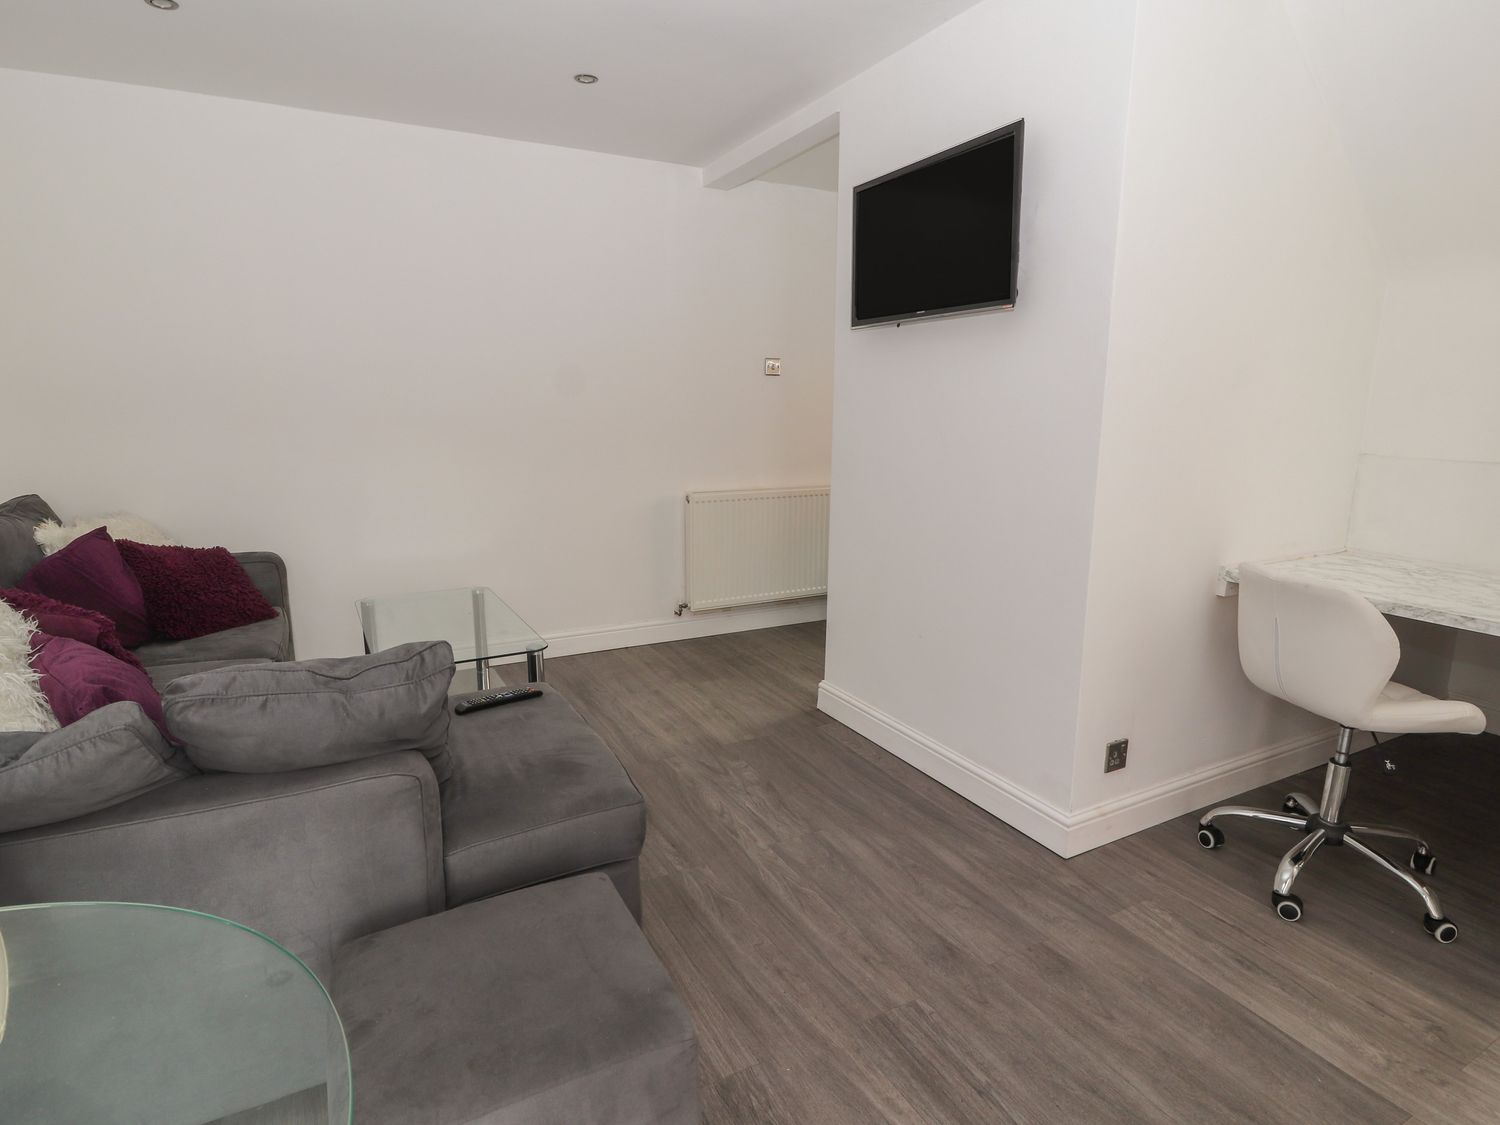 Northgate Avenue in Chester - sleeps 2 people